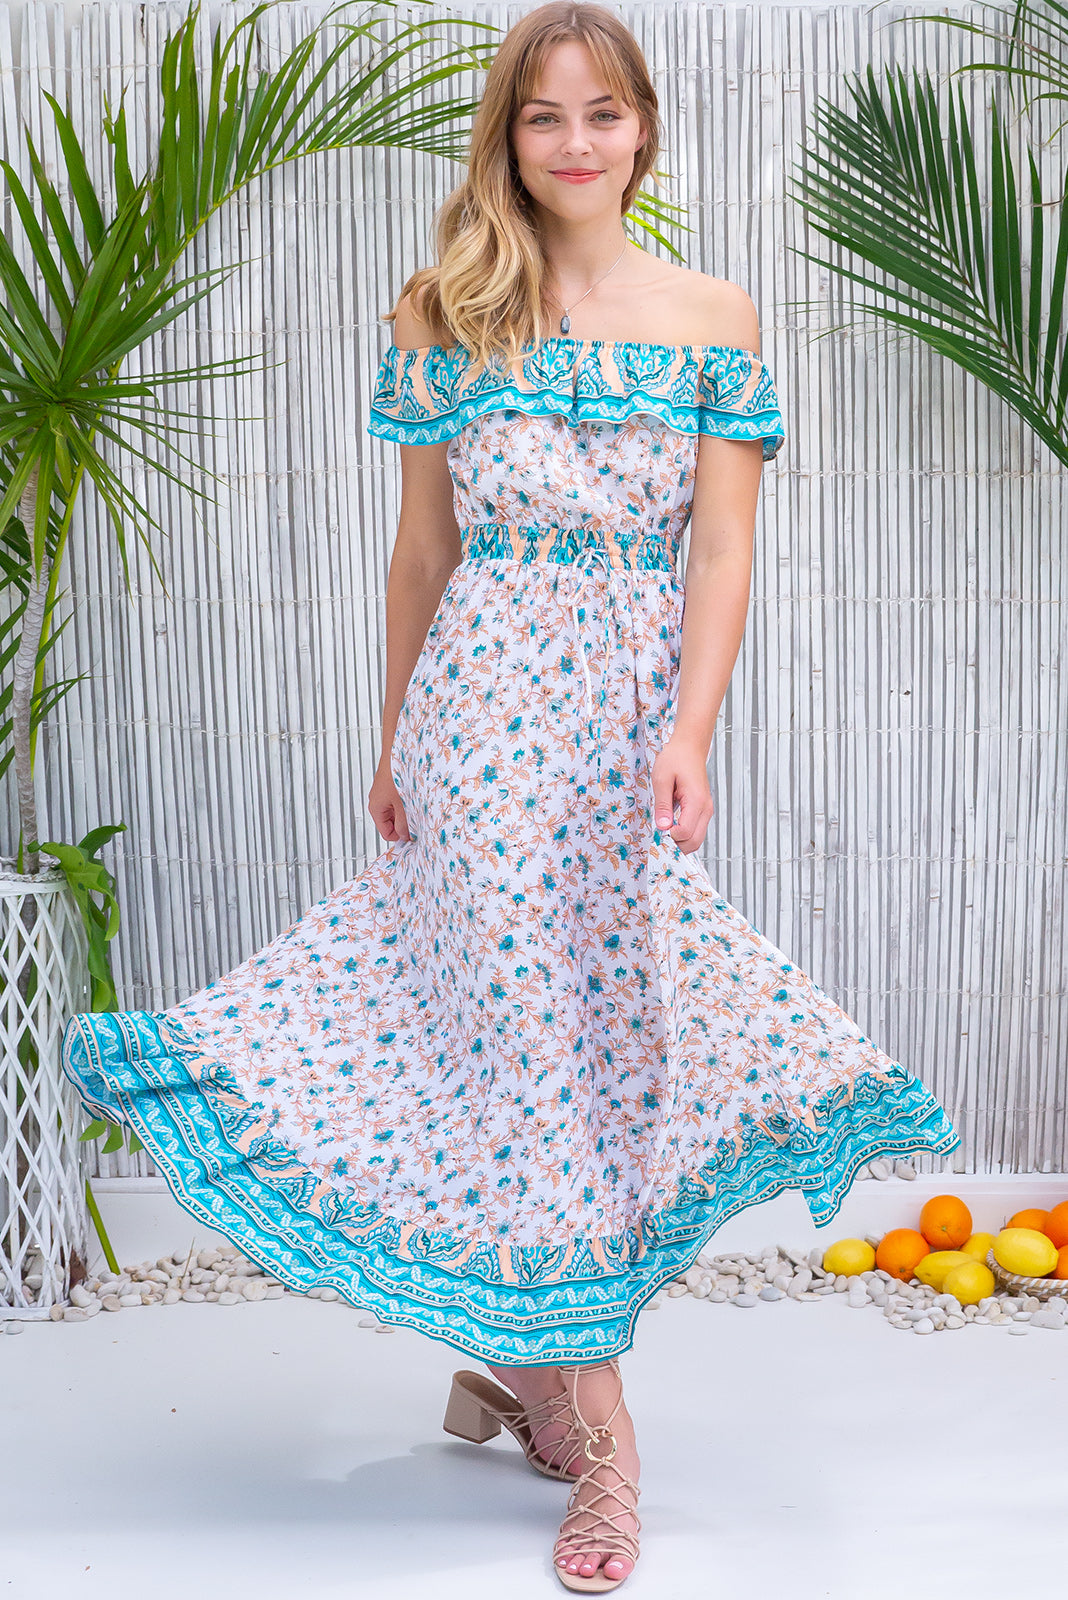 The an be worn on or off shoulders, elasticated drawstring waist, wlasticated frill neckline,frill hem with border print, white base with peach and turquoise print in woven 100% rayon.